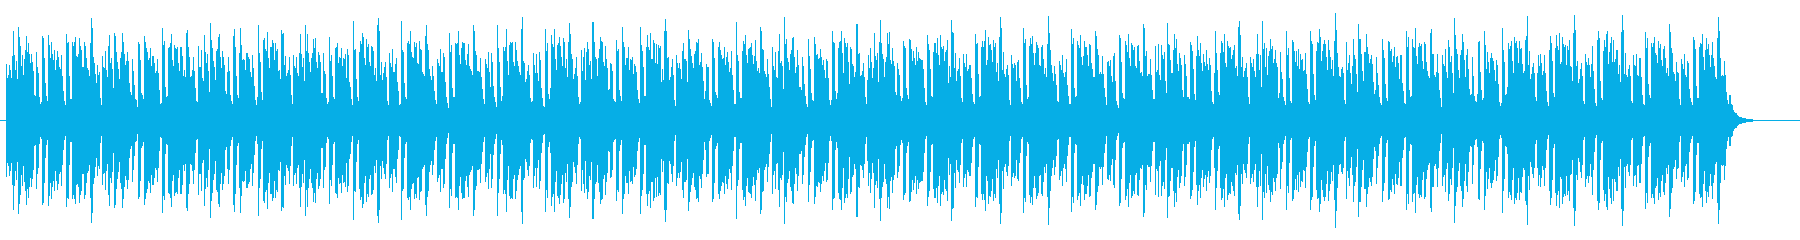 Bright and monotonous electric's reproduced waveform